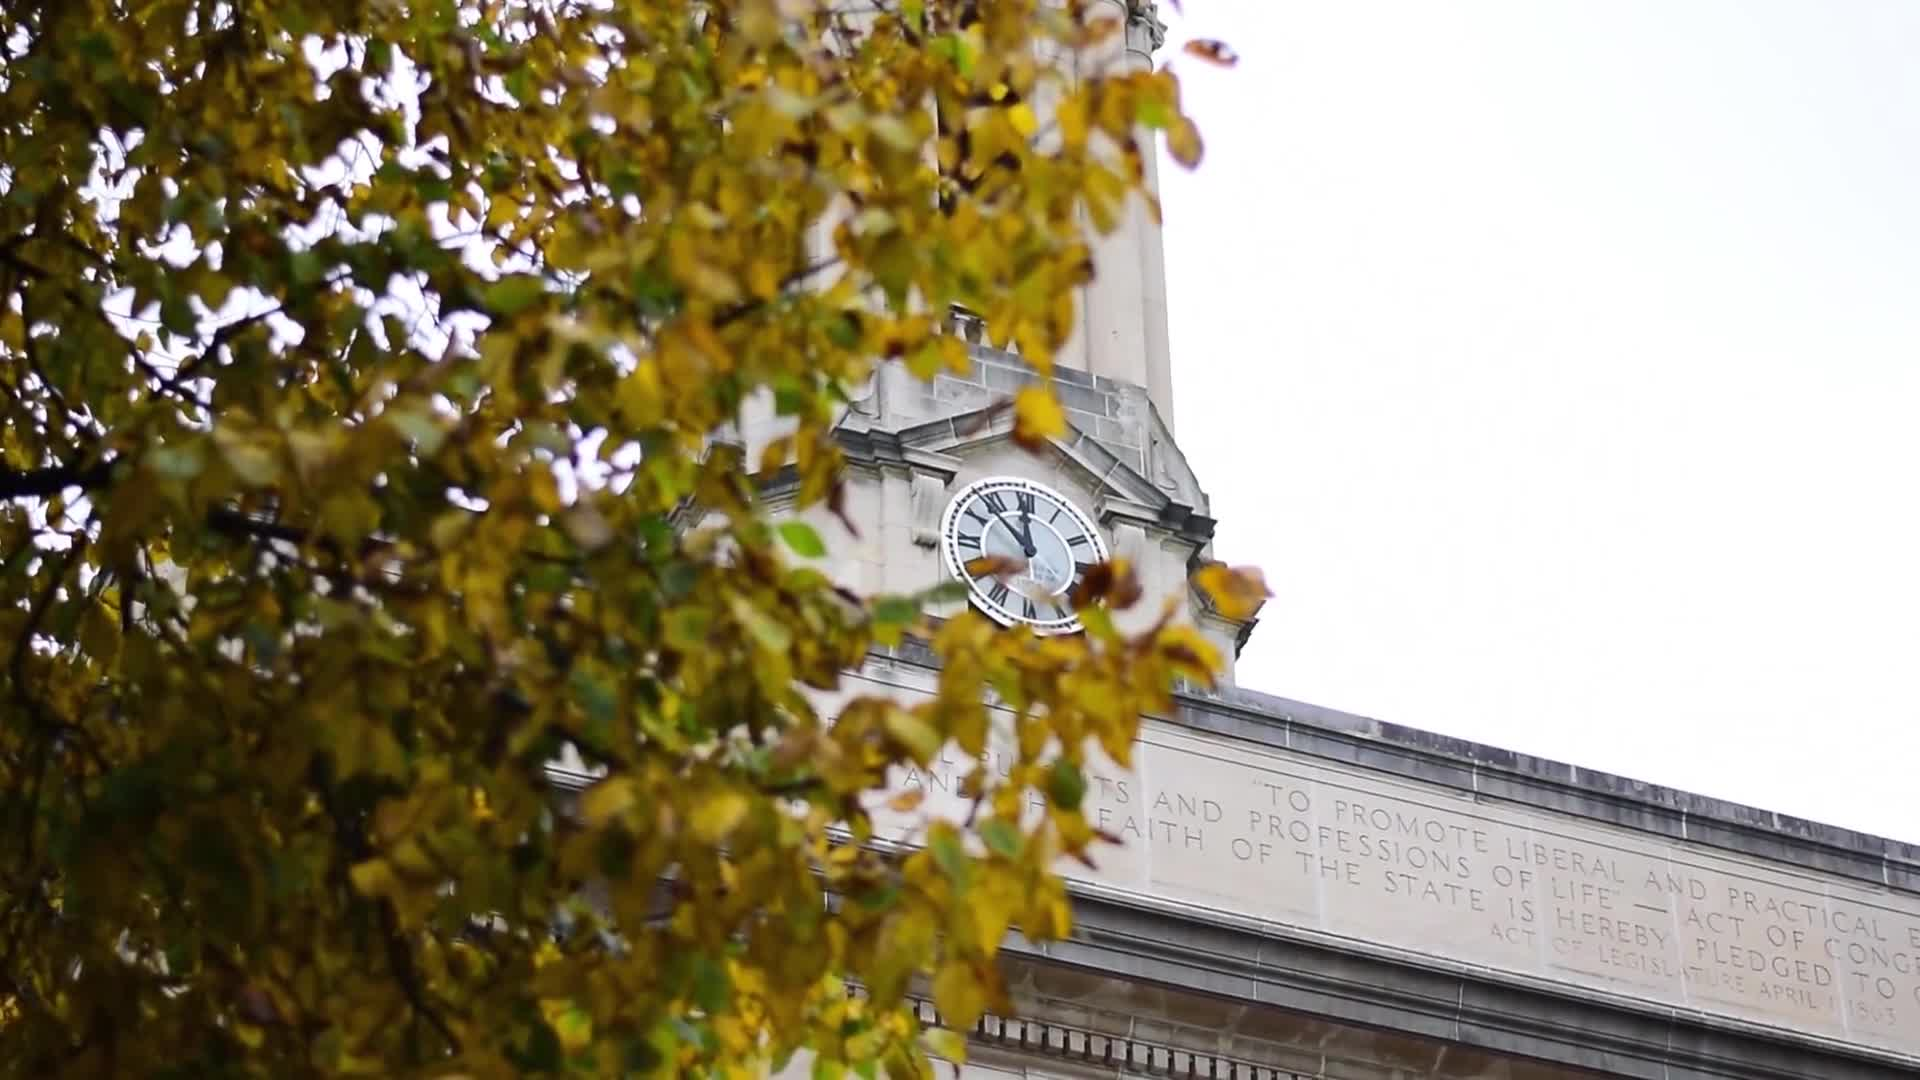 Low angle shot of clock tower